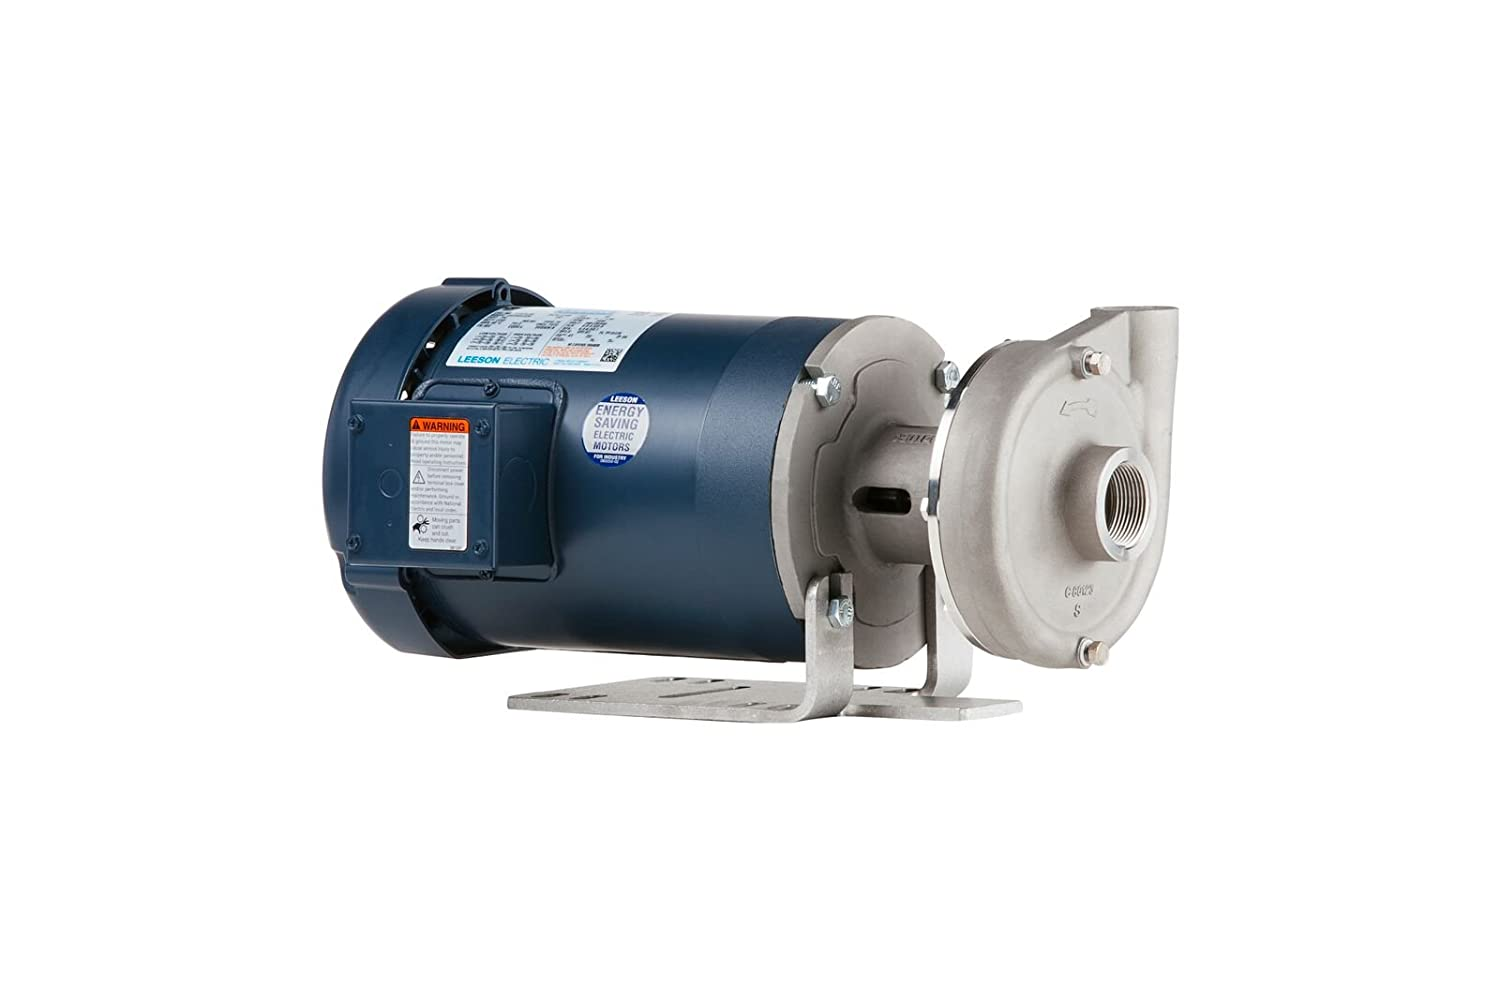 205 GSM Maximum Flow Rate Price Pump RC200AI-406-6A111-200-36-1T6 Close Coupled Horizontal and Vertical Centrifugal Pumps Max 205 GPM 2HP TEFC Motor Enclosed Cast Iron